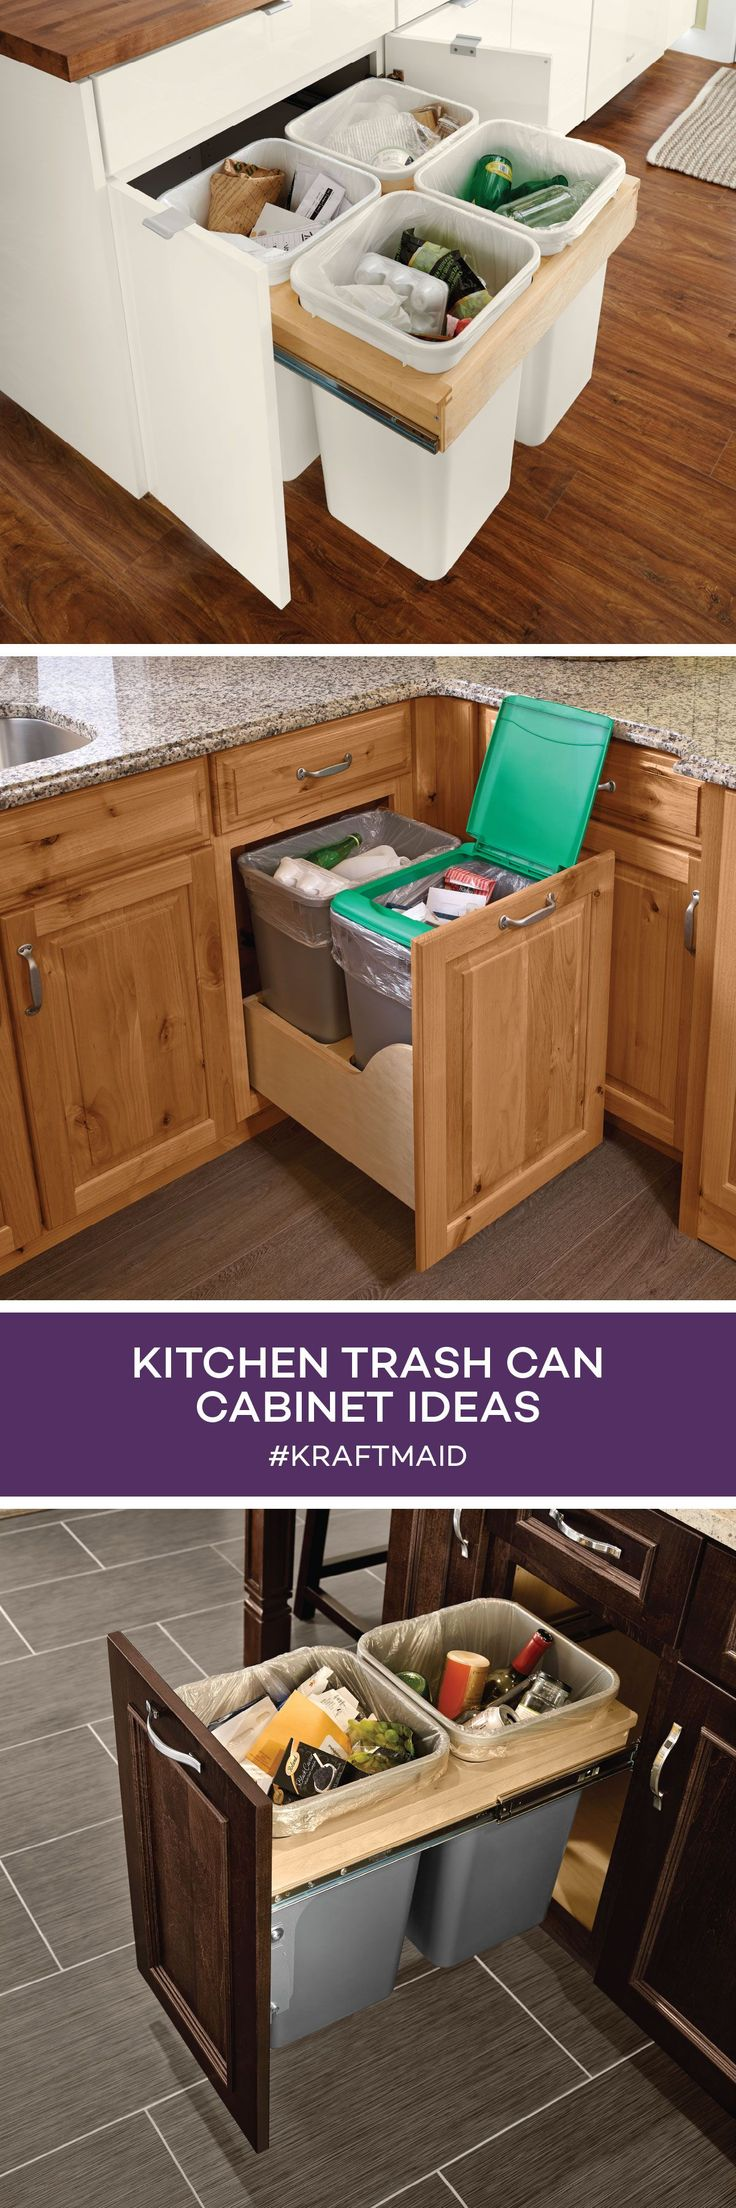 When you're remodeling your kitchen, don't forget to make space for your wastebasket and recycling. Here are a few ways to keep your trash bins out of sight.